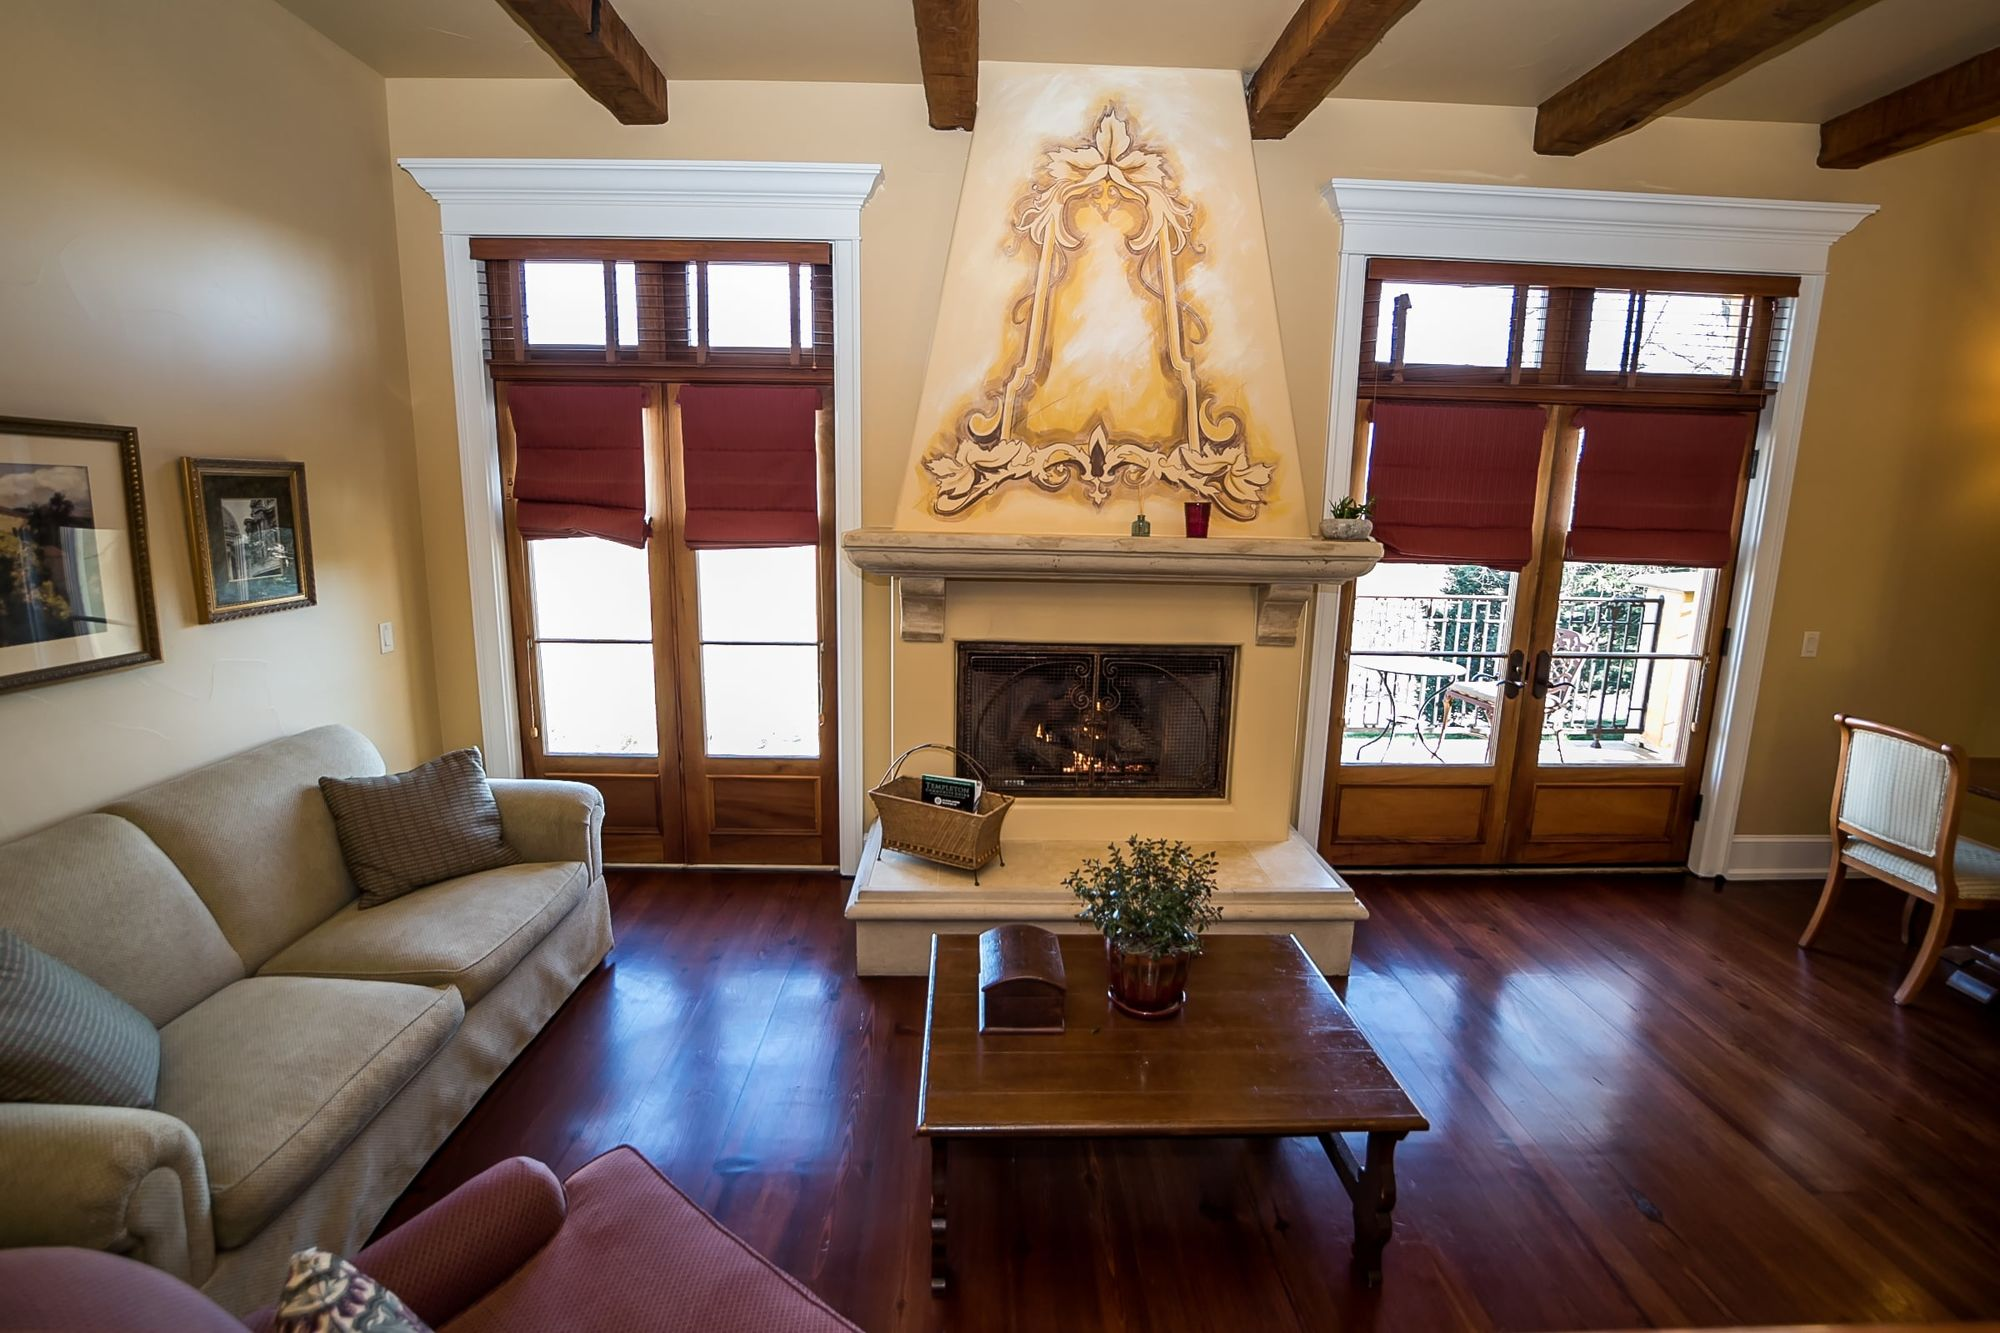 Sitting area with fireplace and decorative chimney breast and french doors on either side